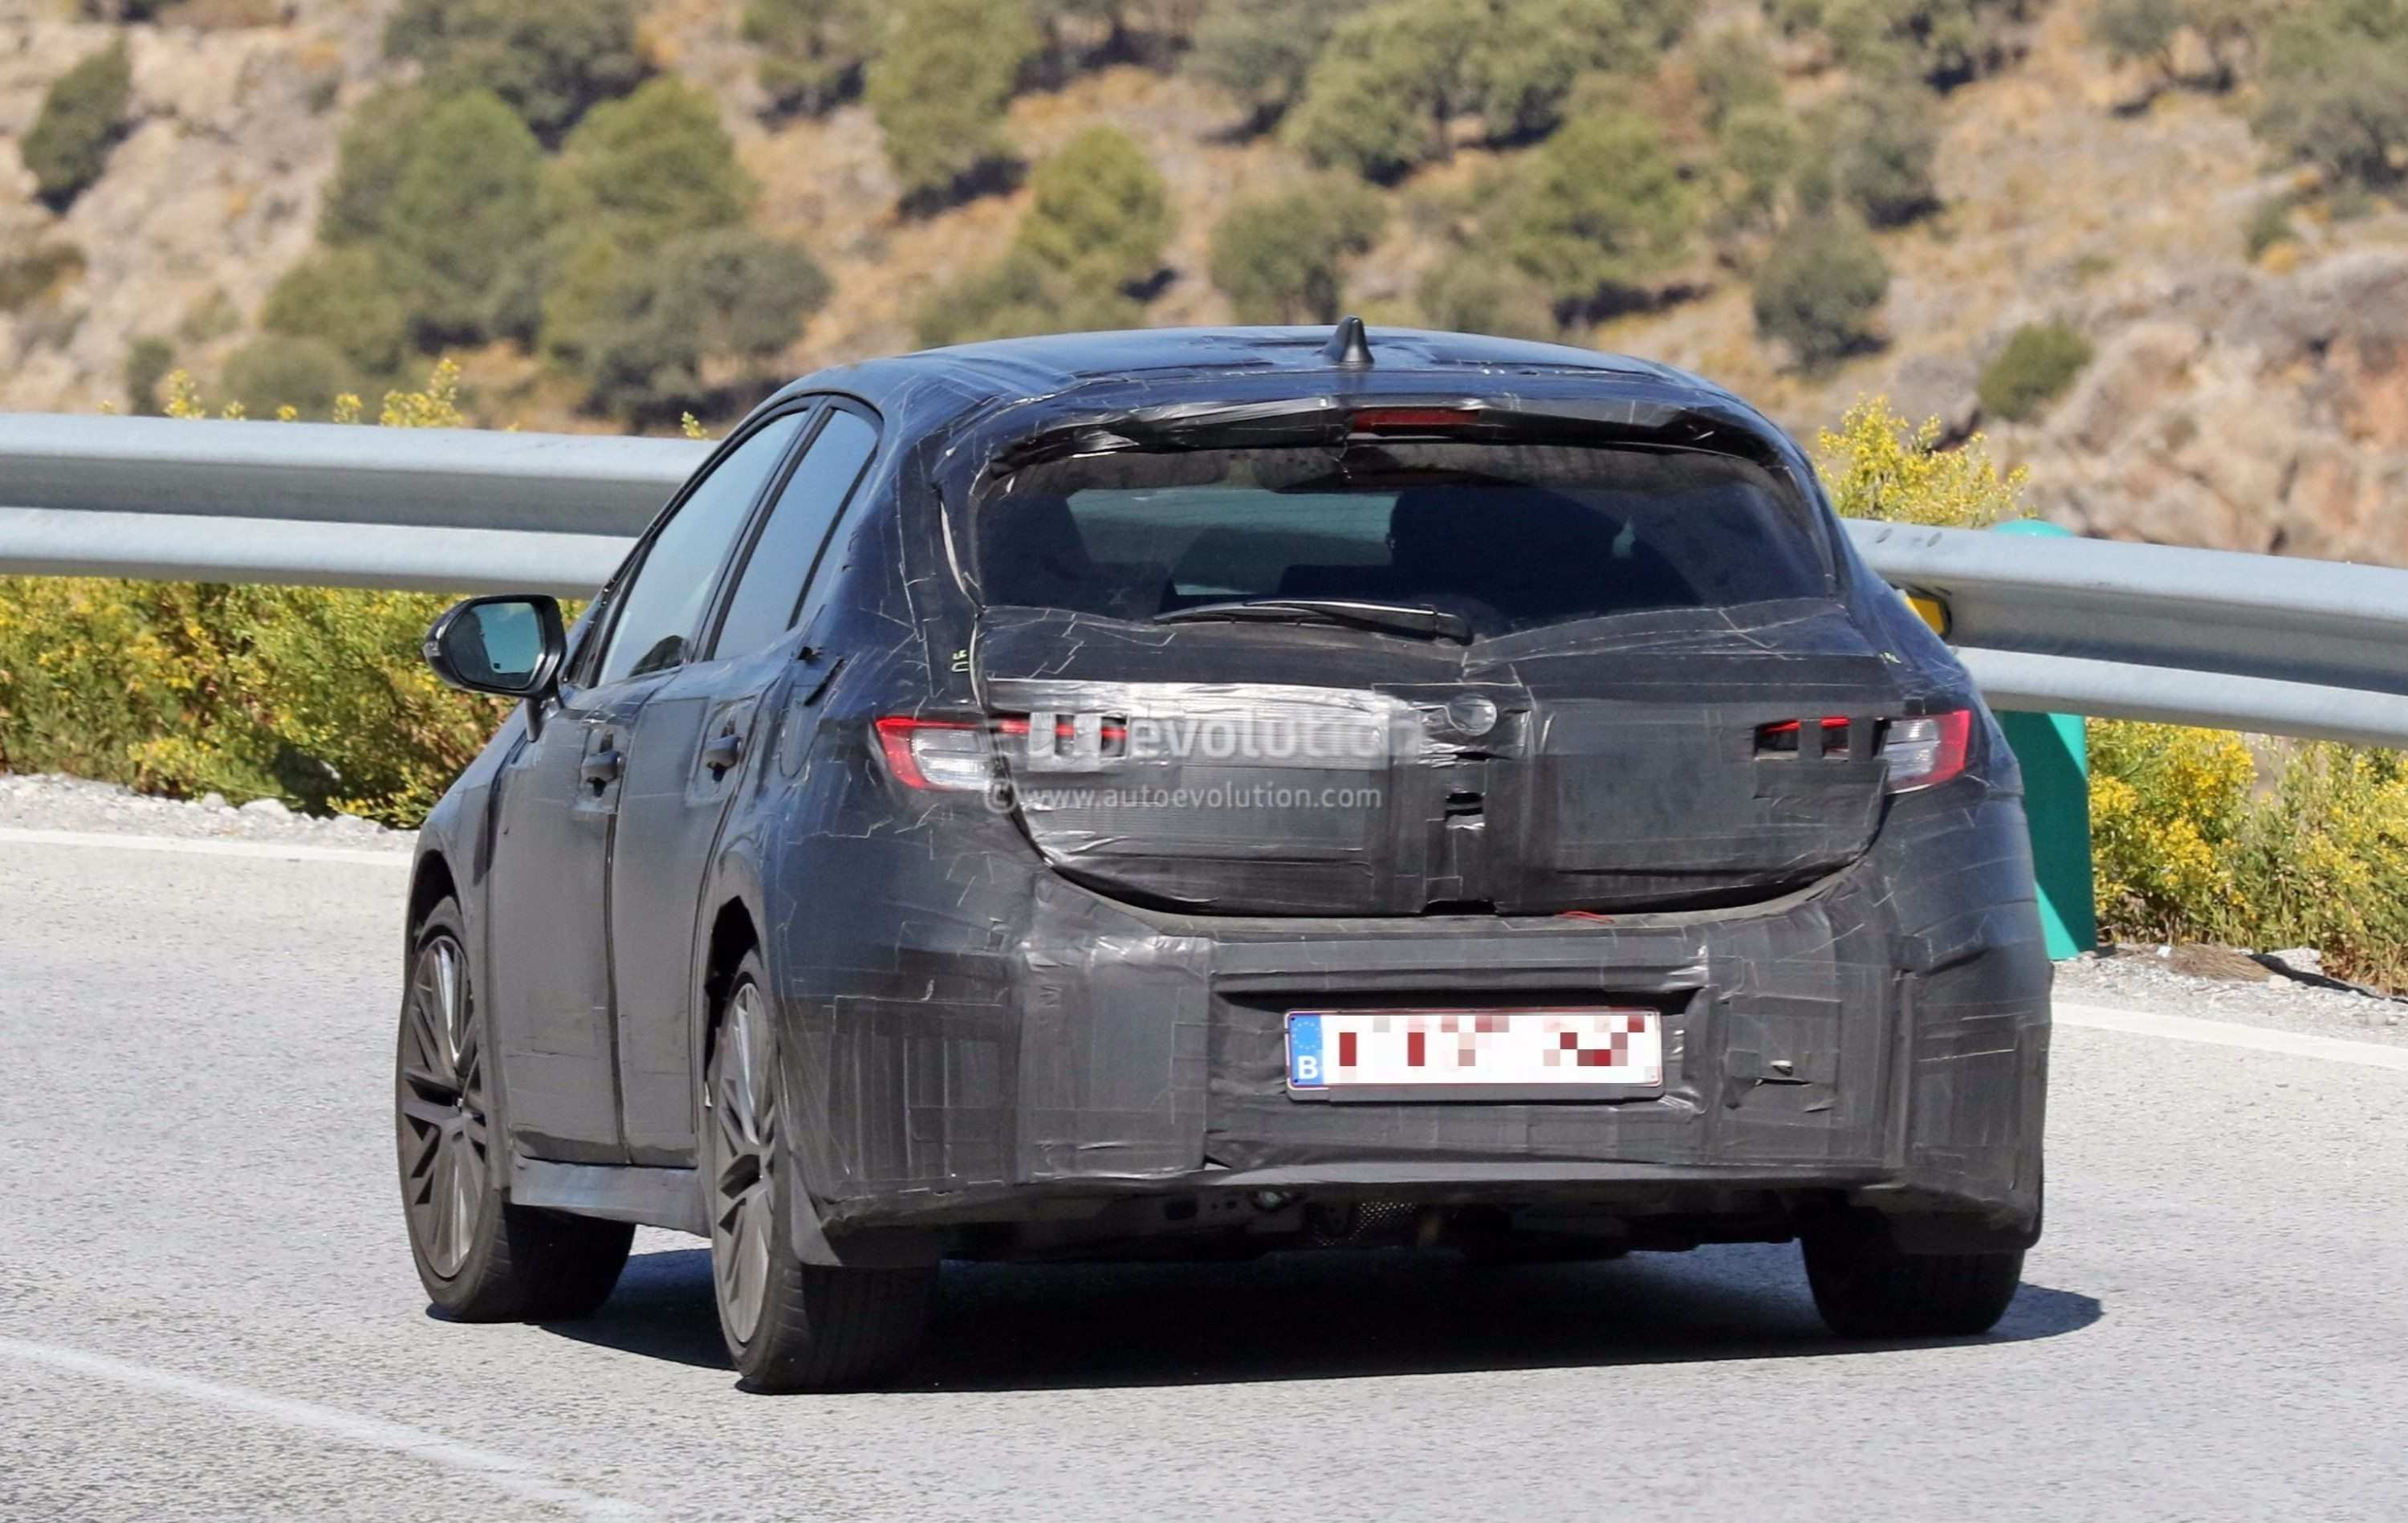 97 The Best 2019 New Toyota Avensis Spy Shots Exterior